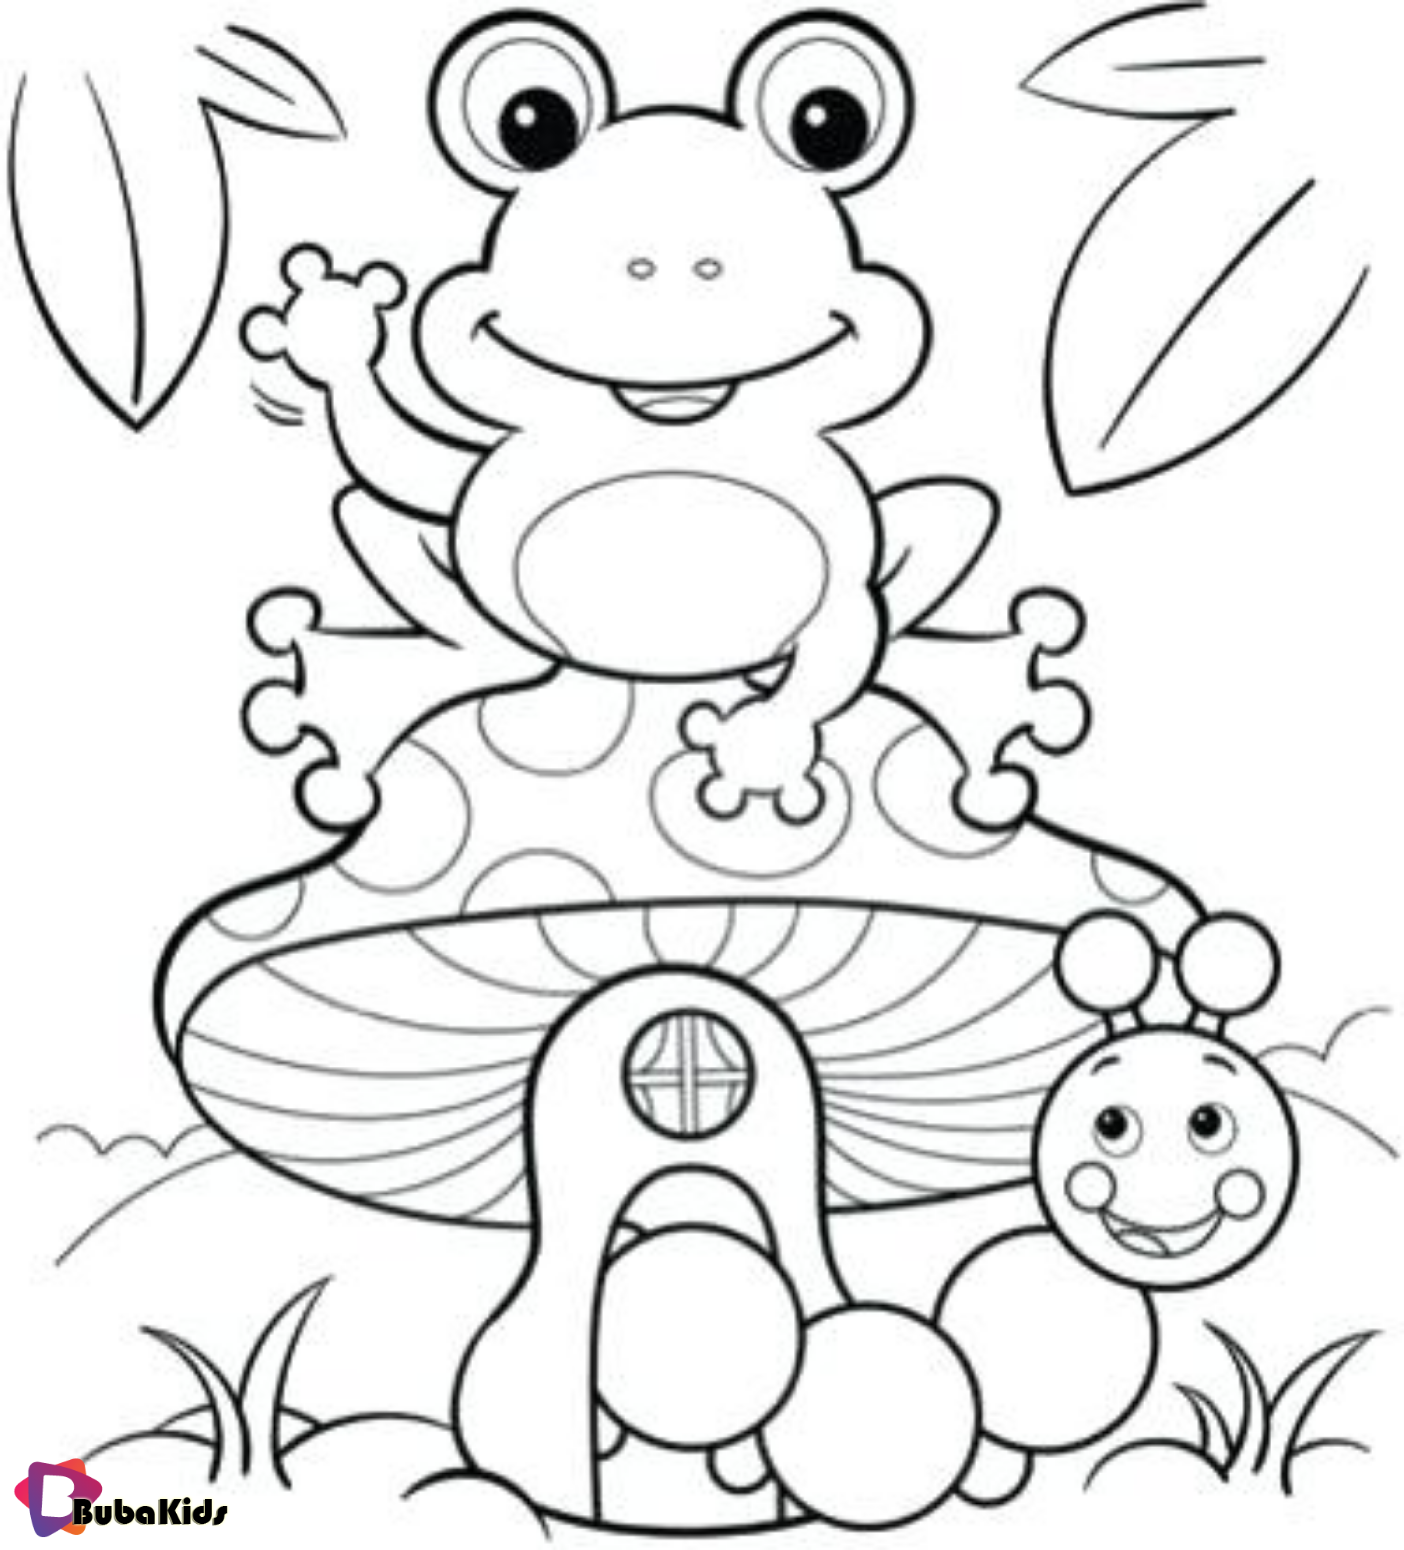 Frog Coloring Pages Kids Learning Activity Frog Coloring Pages Cartoon Coloring Pages Cute Coloring Pages